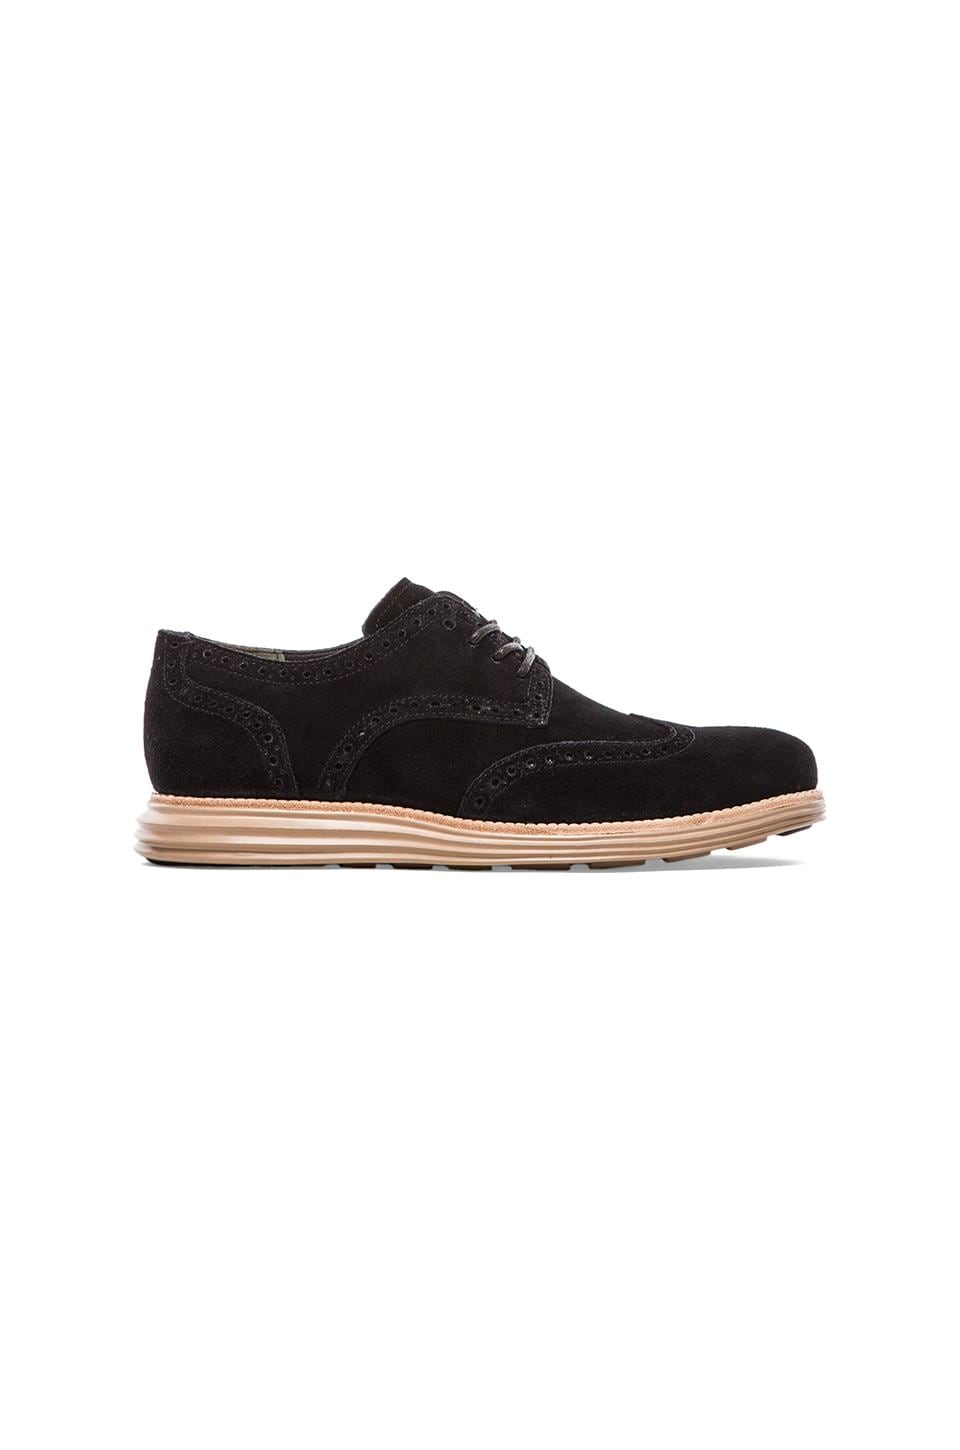 Cole Haan Lunargrand Wing Tip in Black Suede